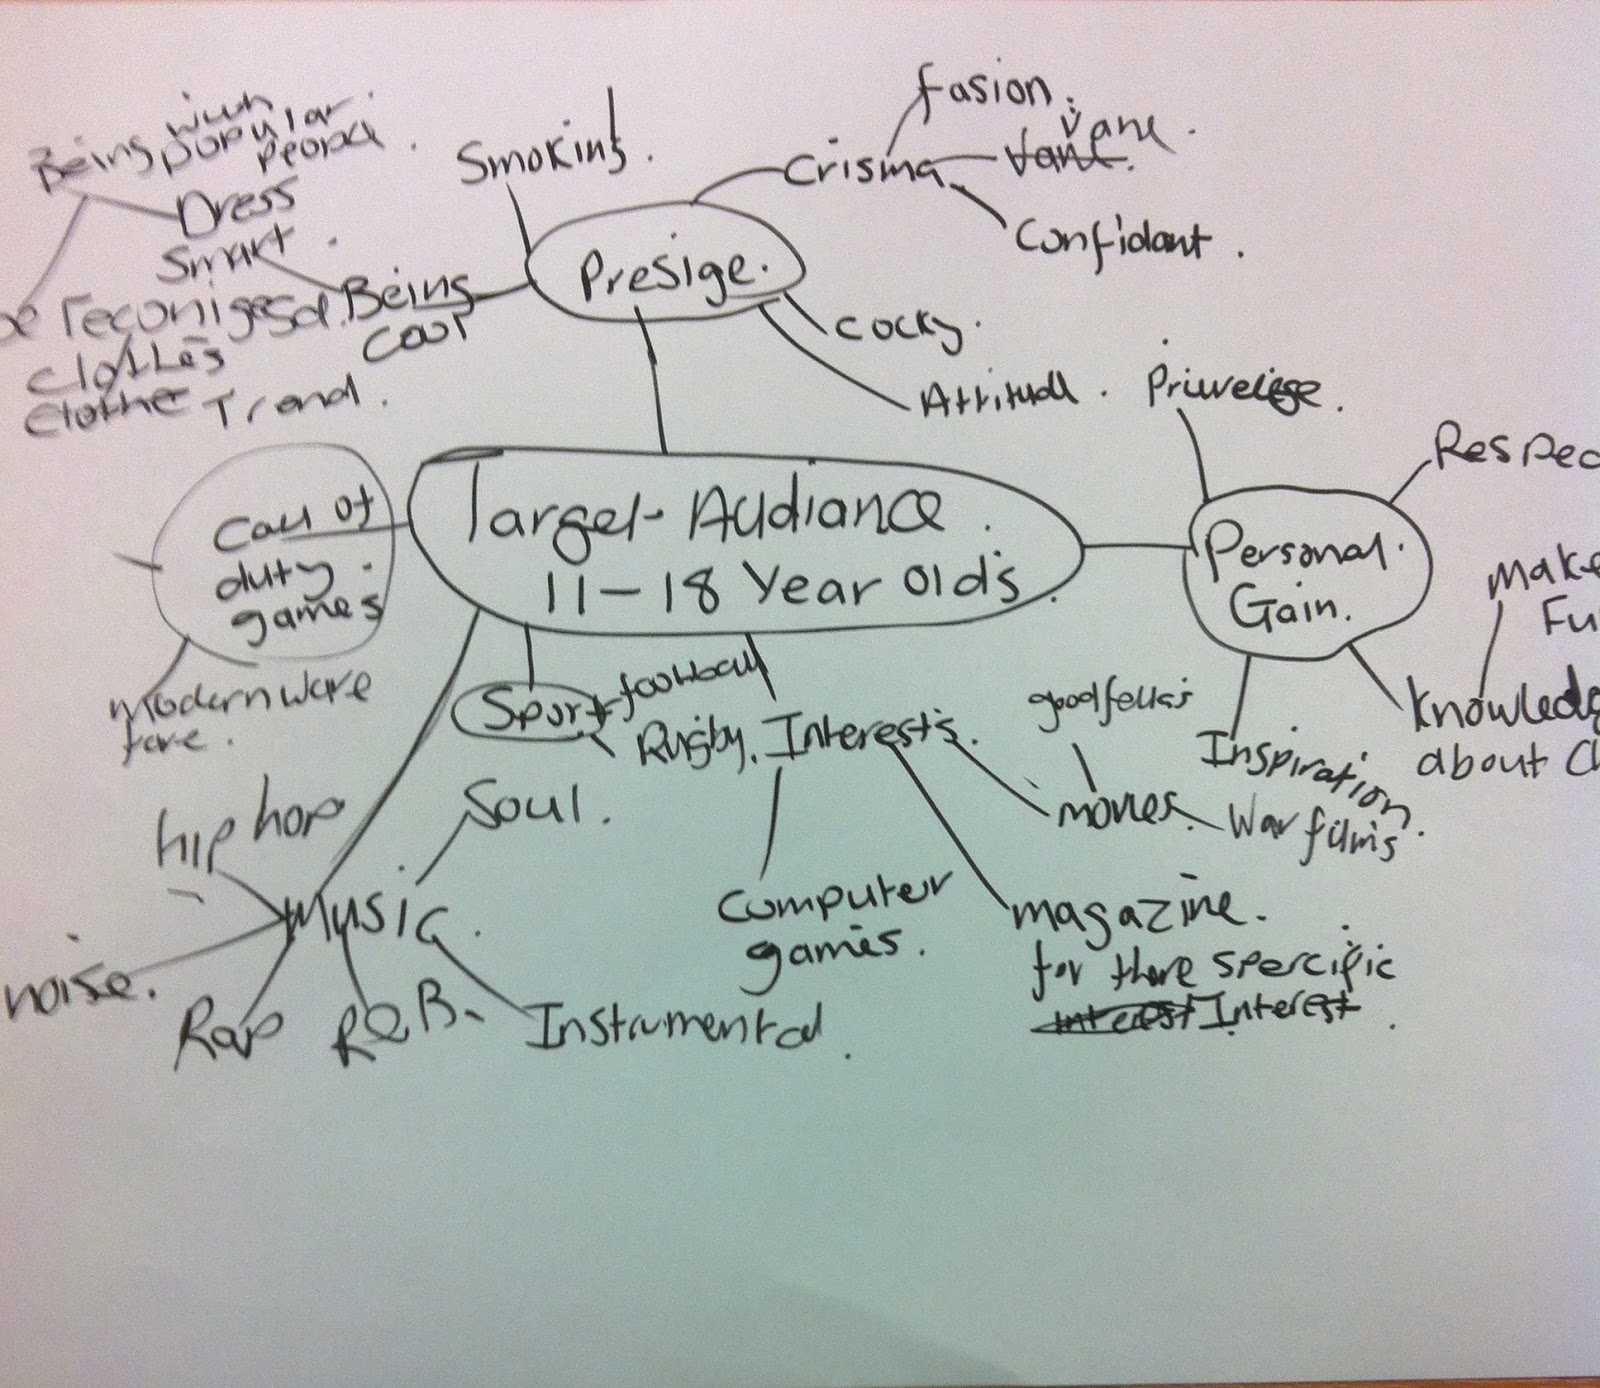 i did an target audience mind map and labeled what a young teenage does so for example they like playing on video games so ill research video games and war